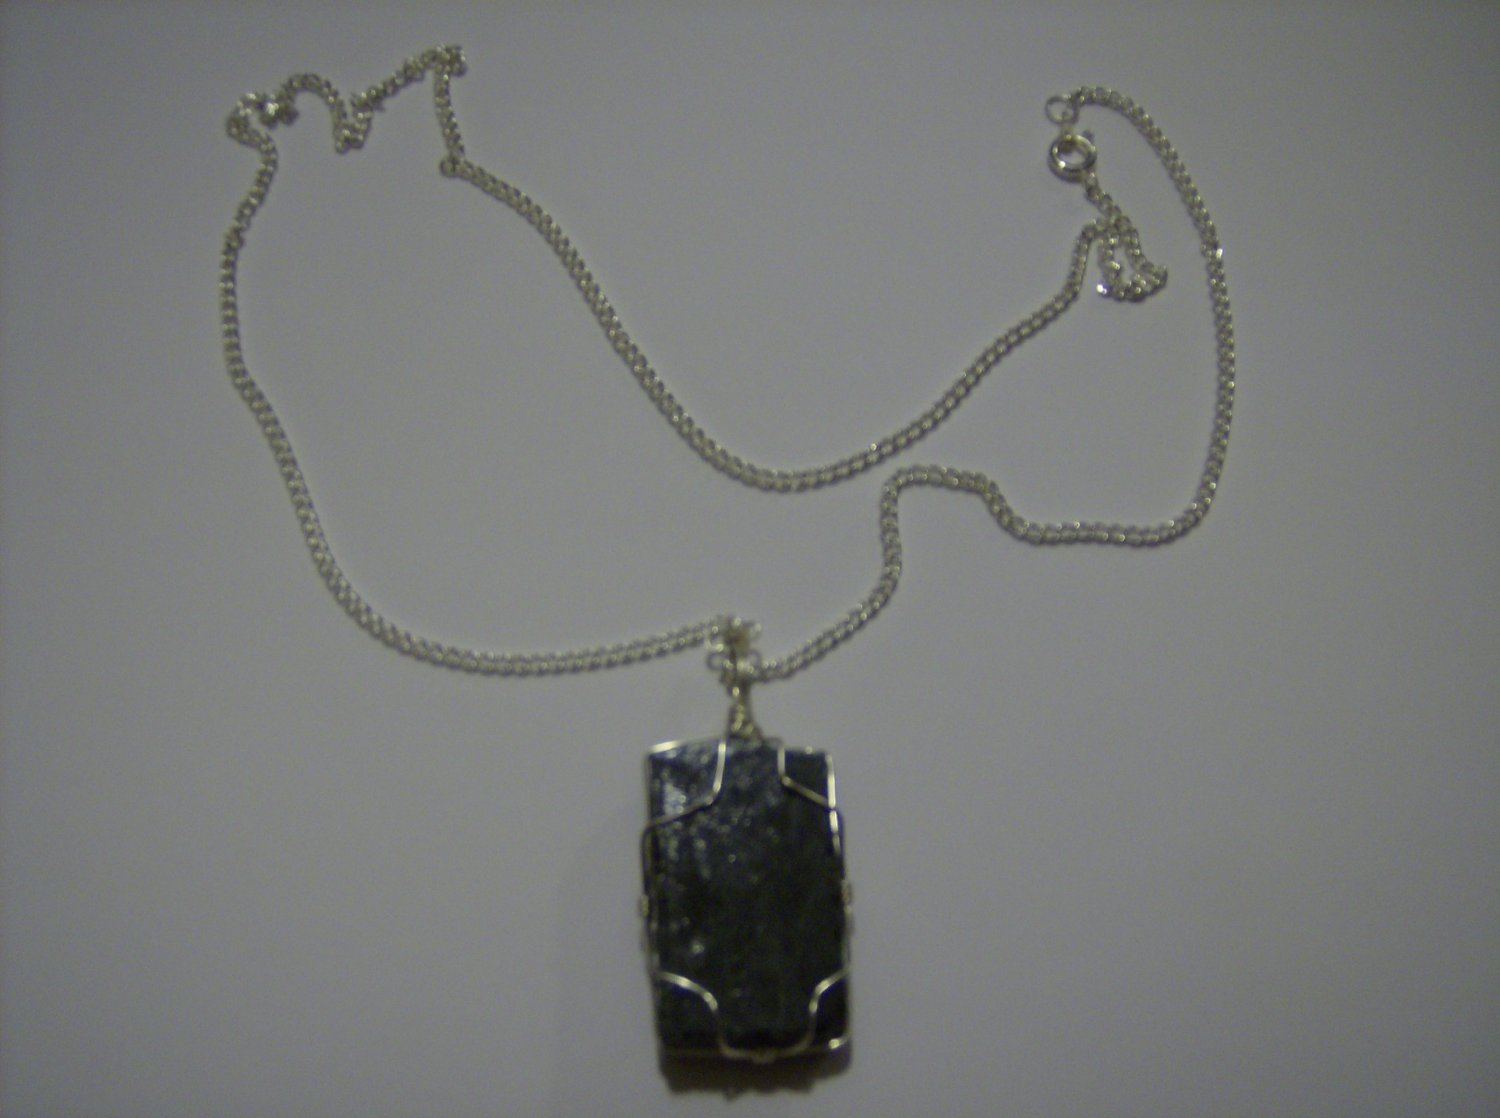 Vermont Green necklace